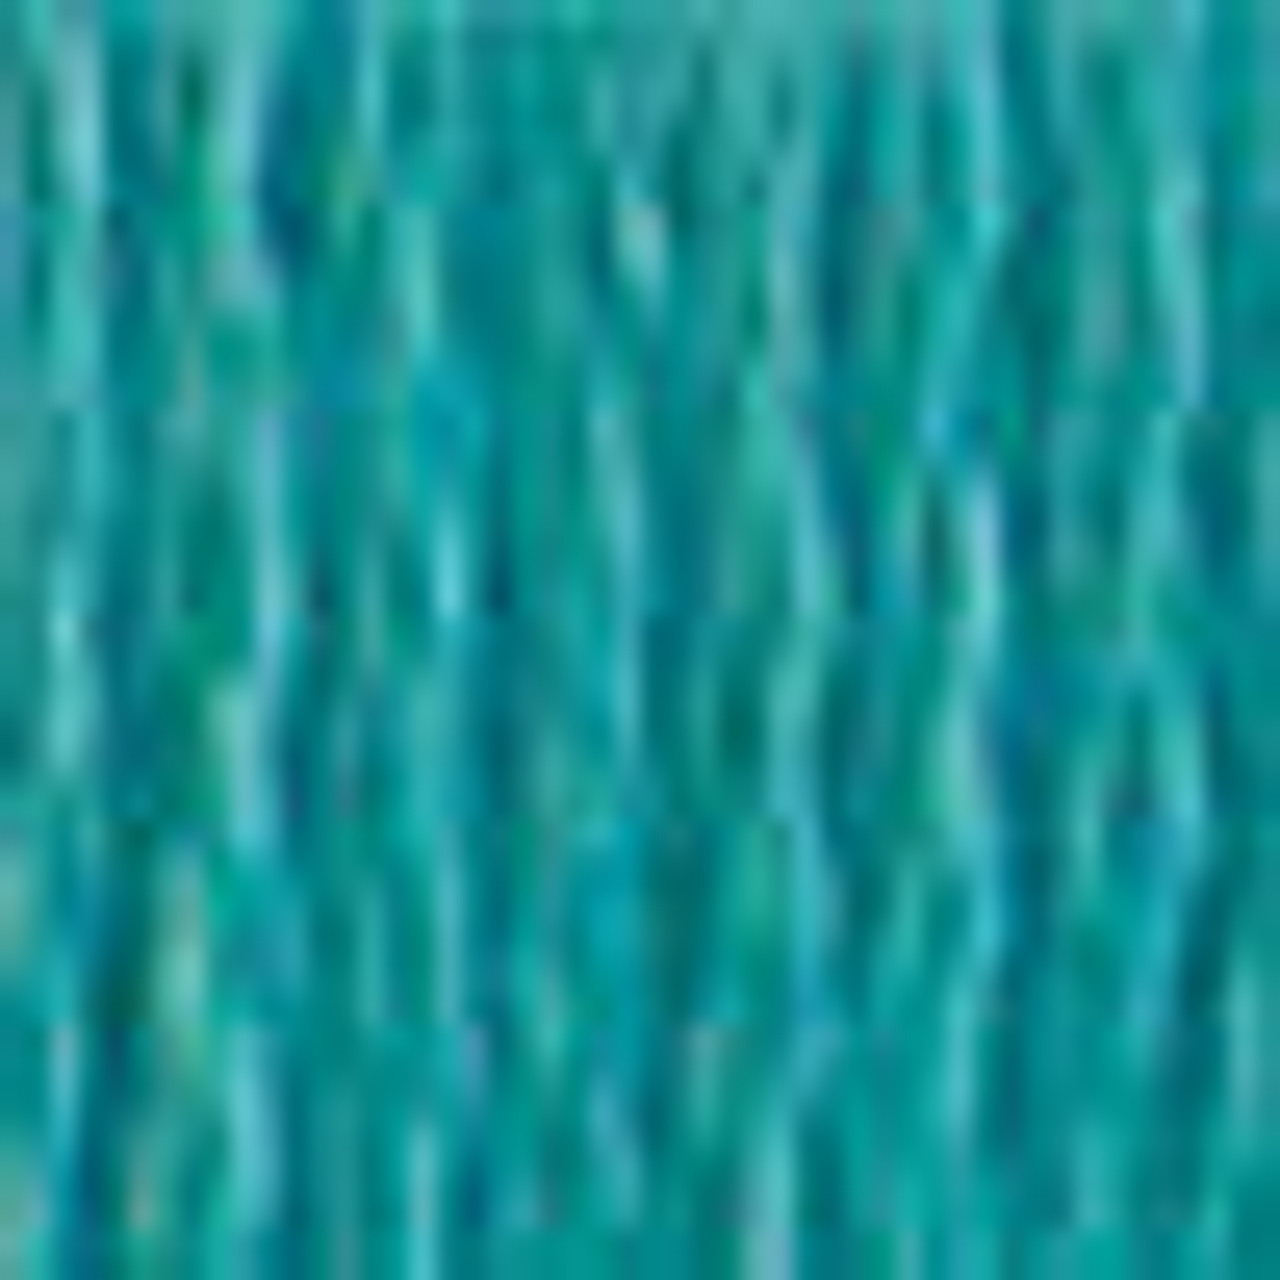 DMC # 3810 Dark Turquoise Floss / Thread